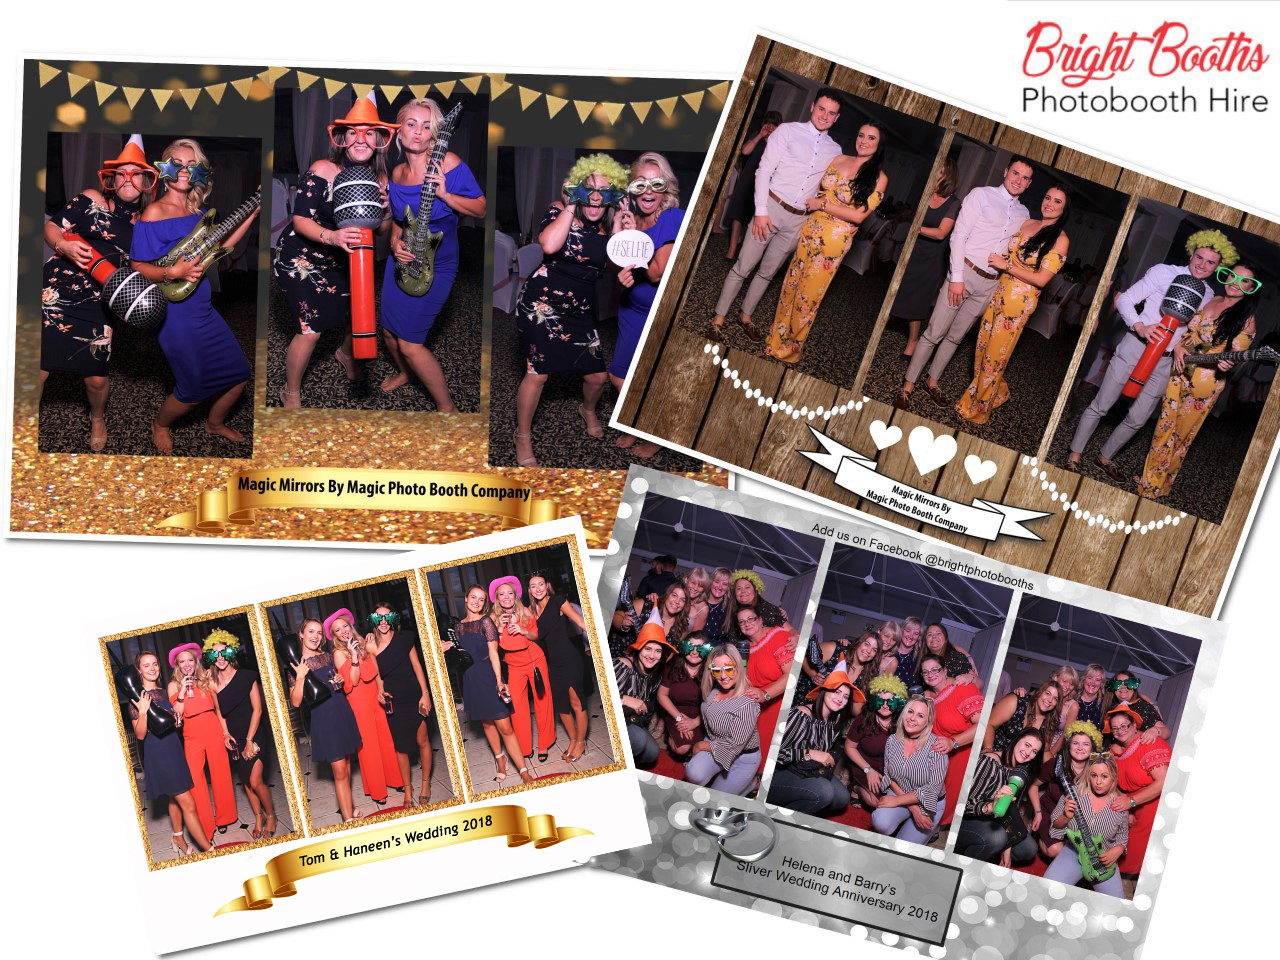 Premier PhotoBooth Hire Nottingham – PhotoBooth & Magic